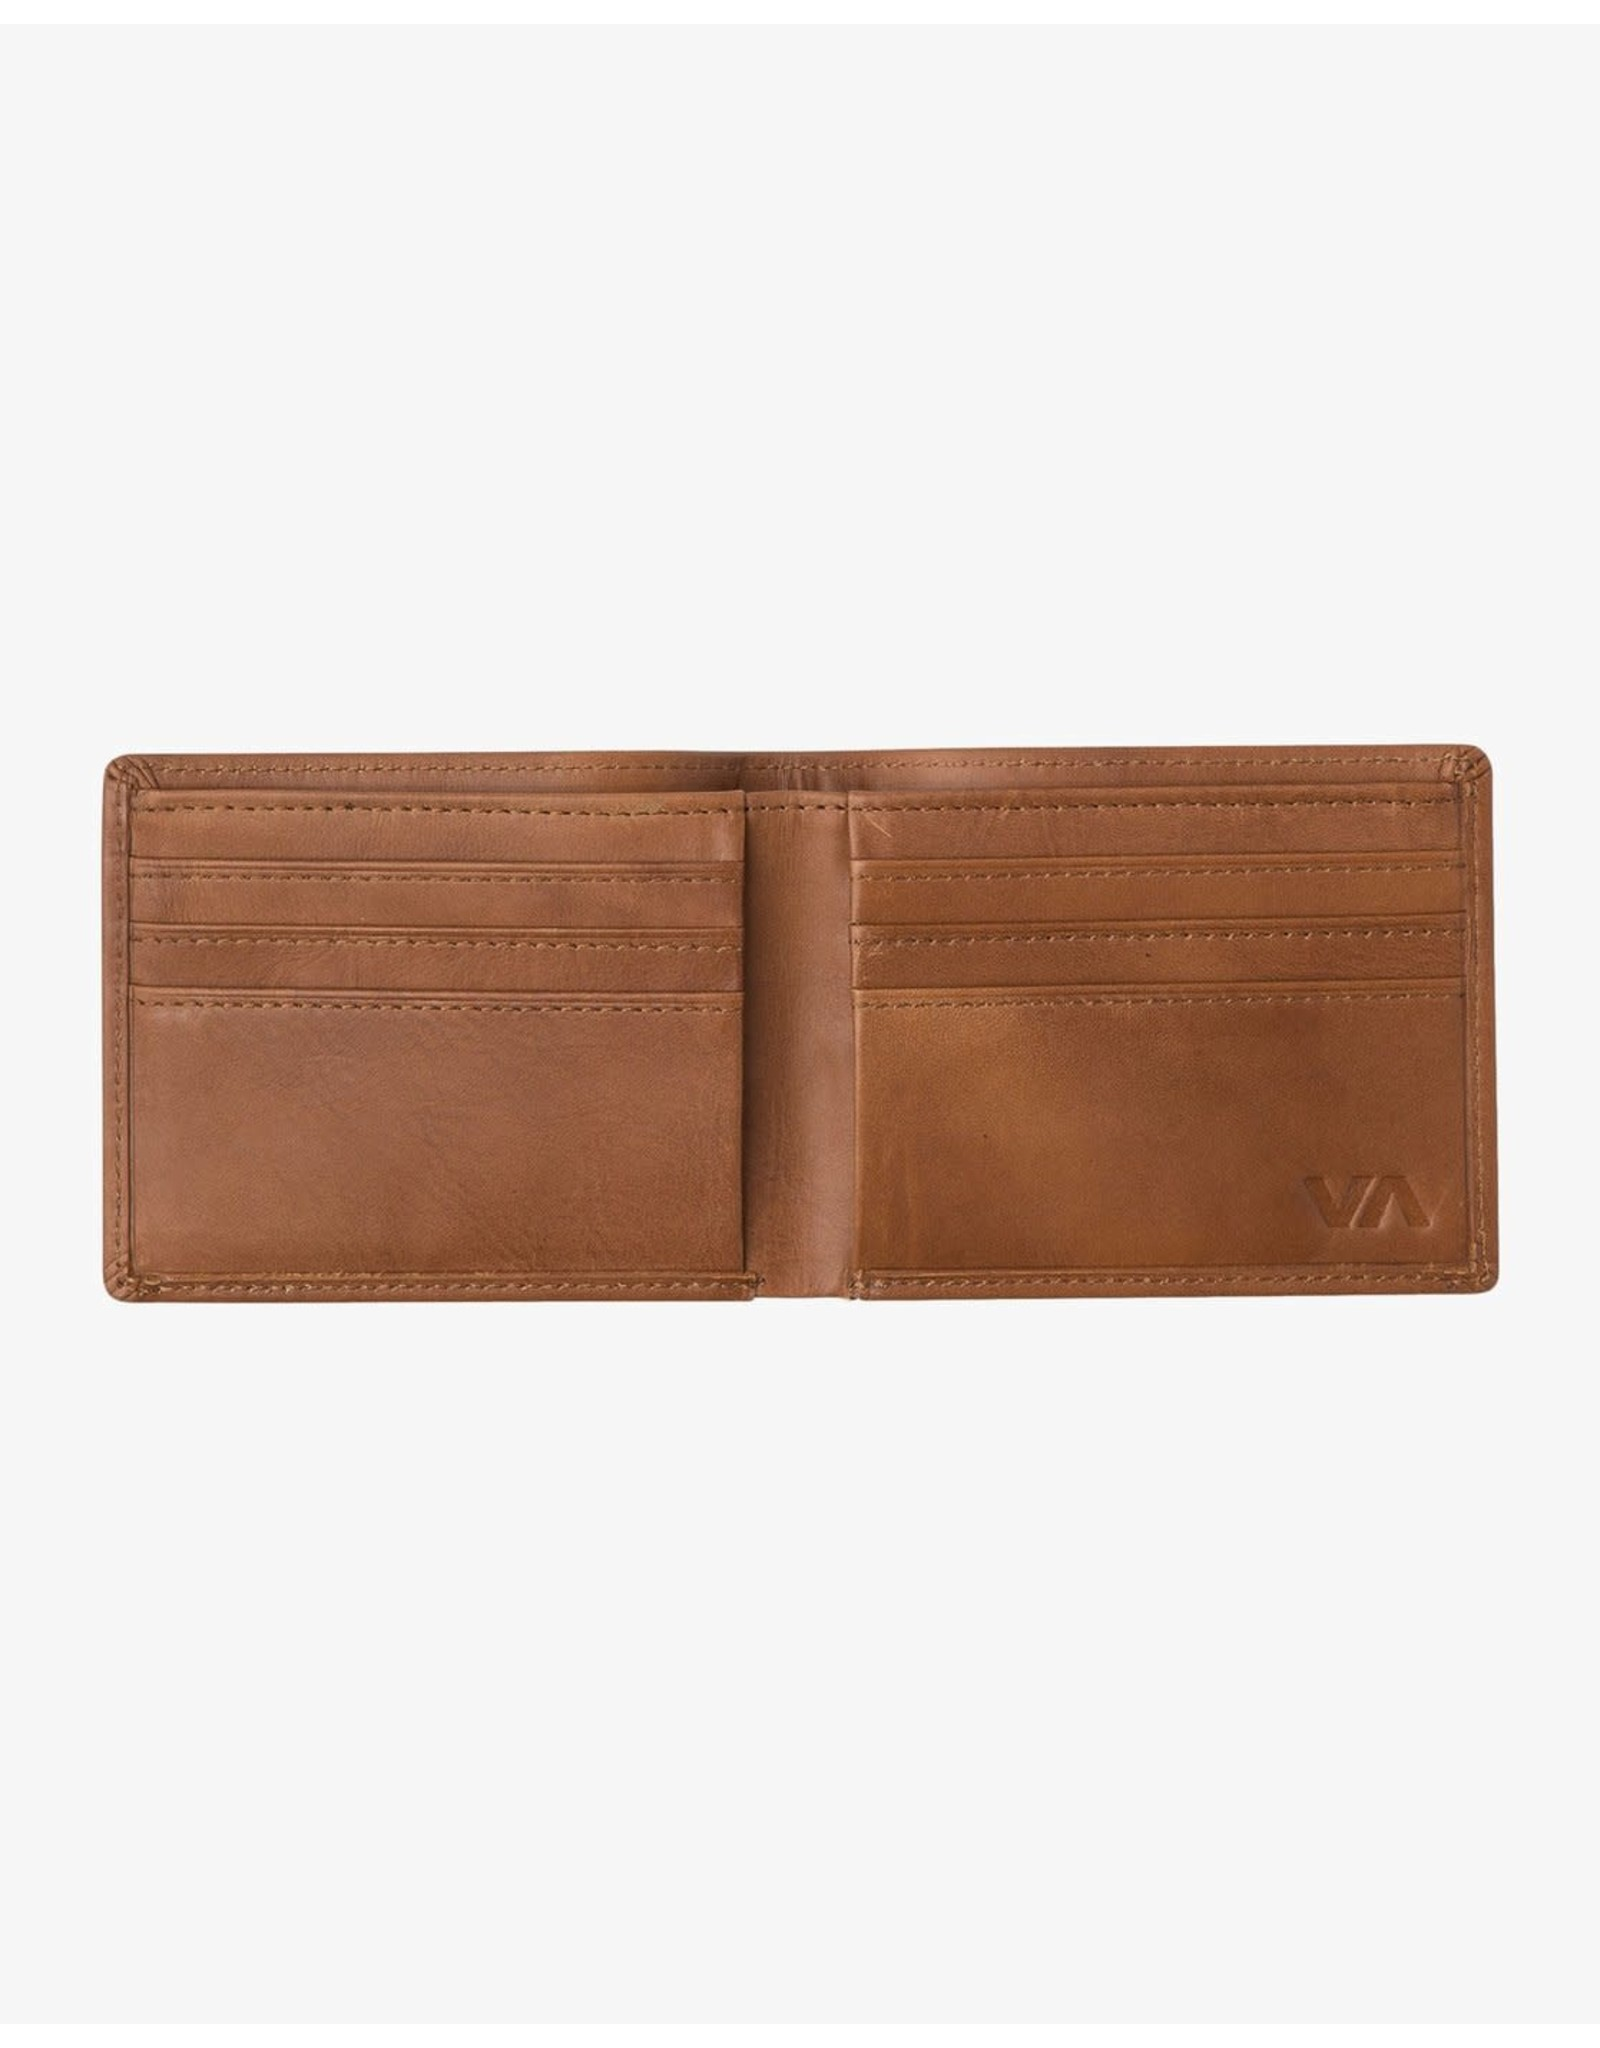 rvca Rvca - Portefeuille homme bifold tan